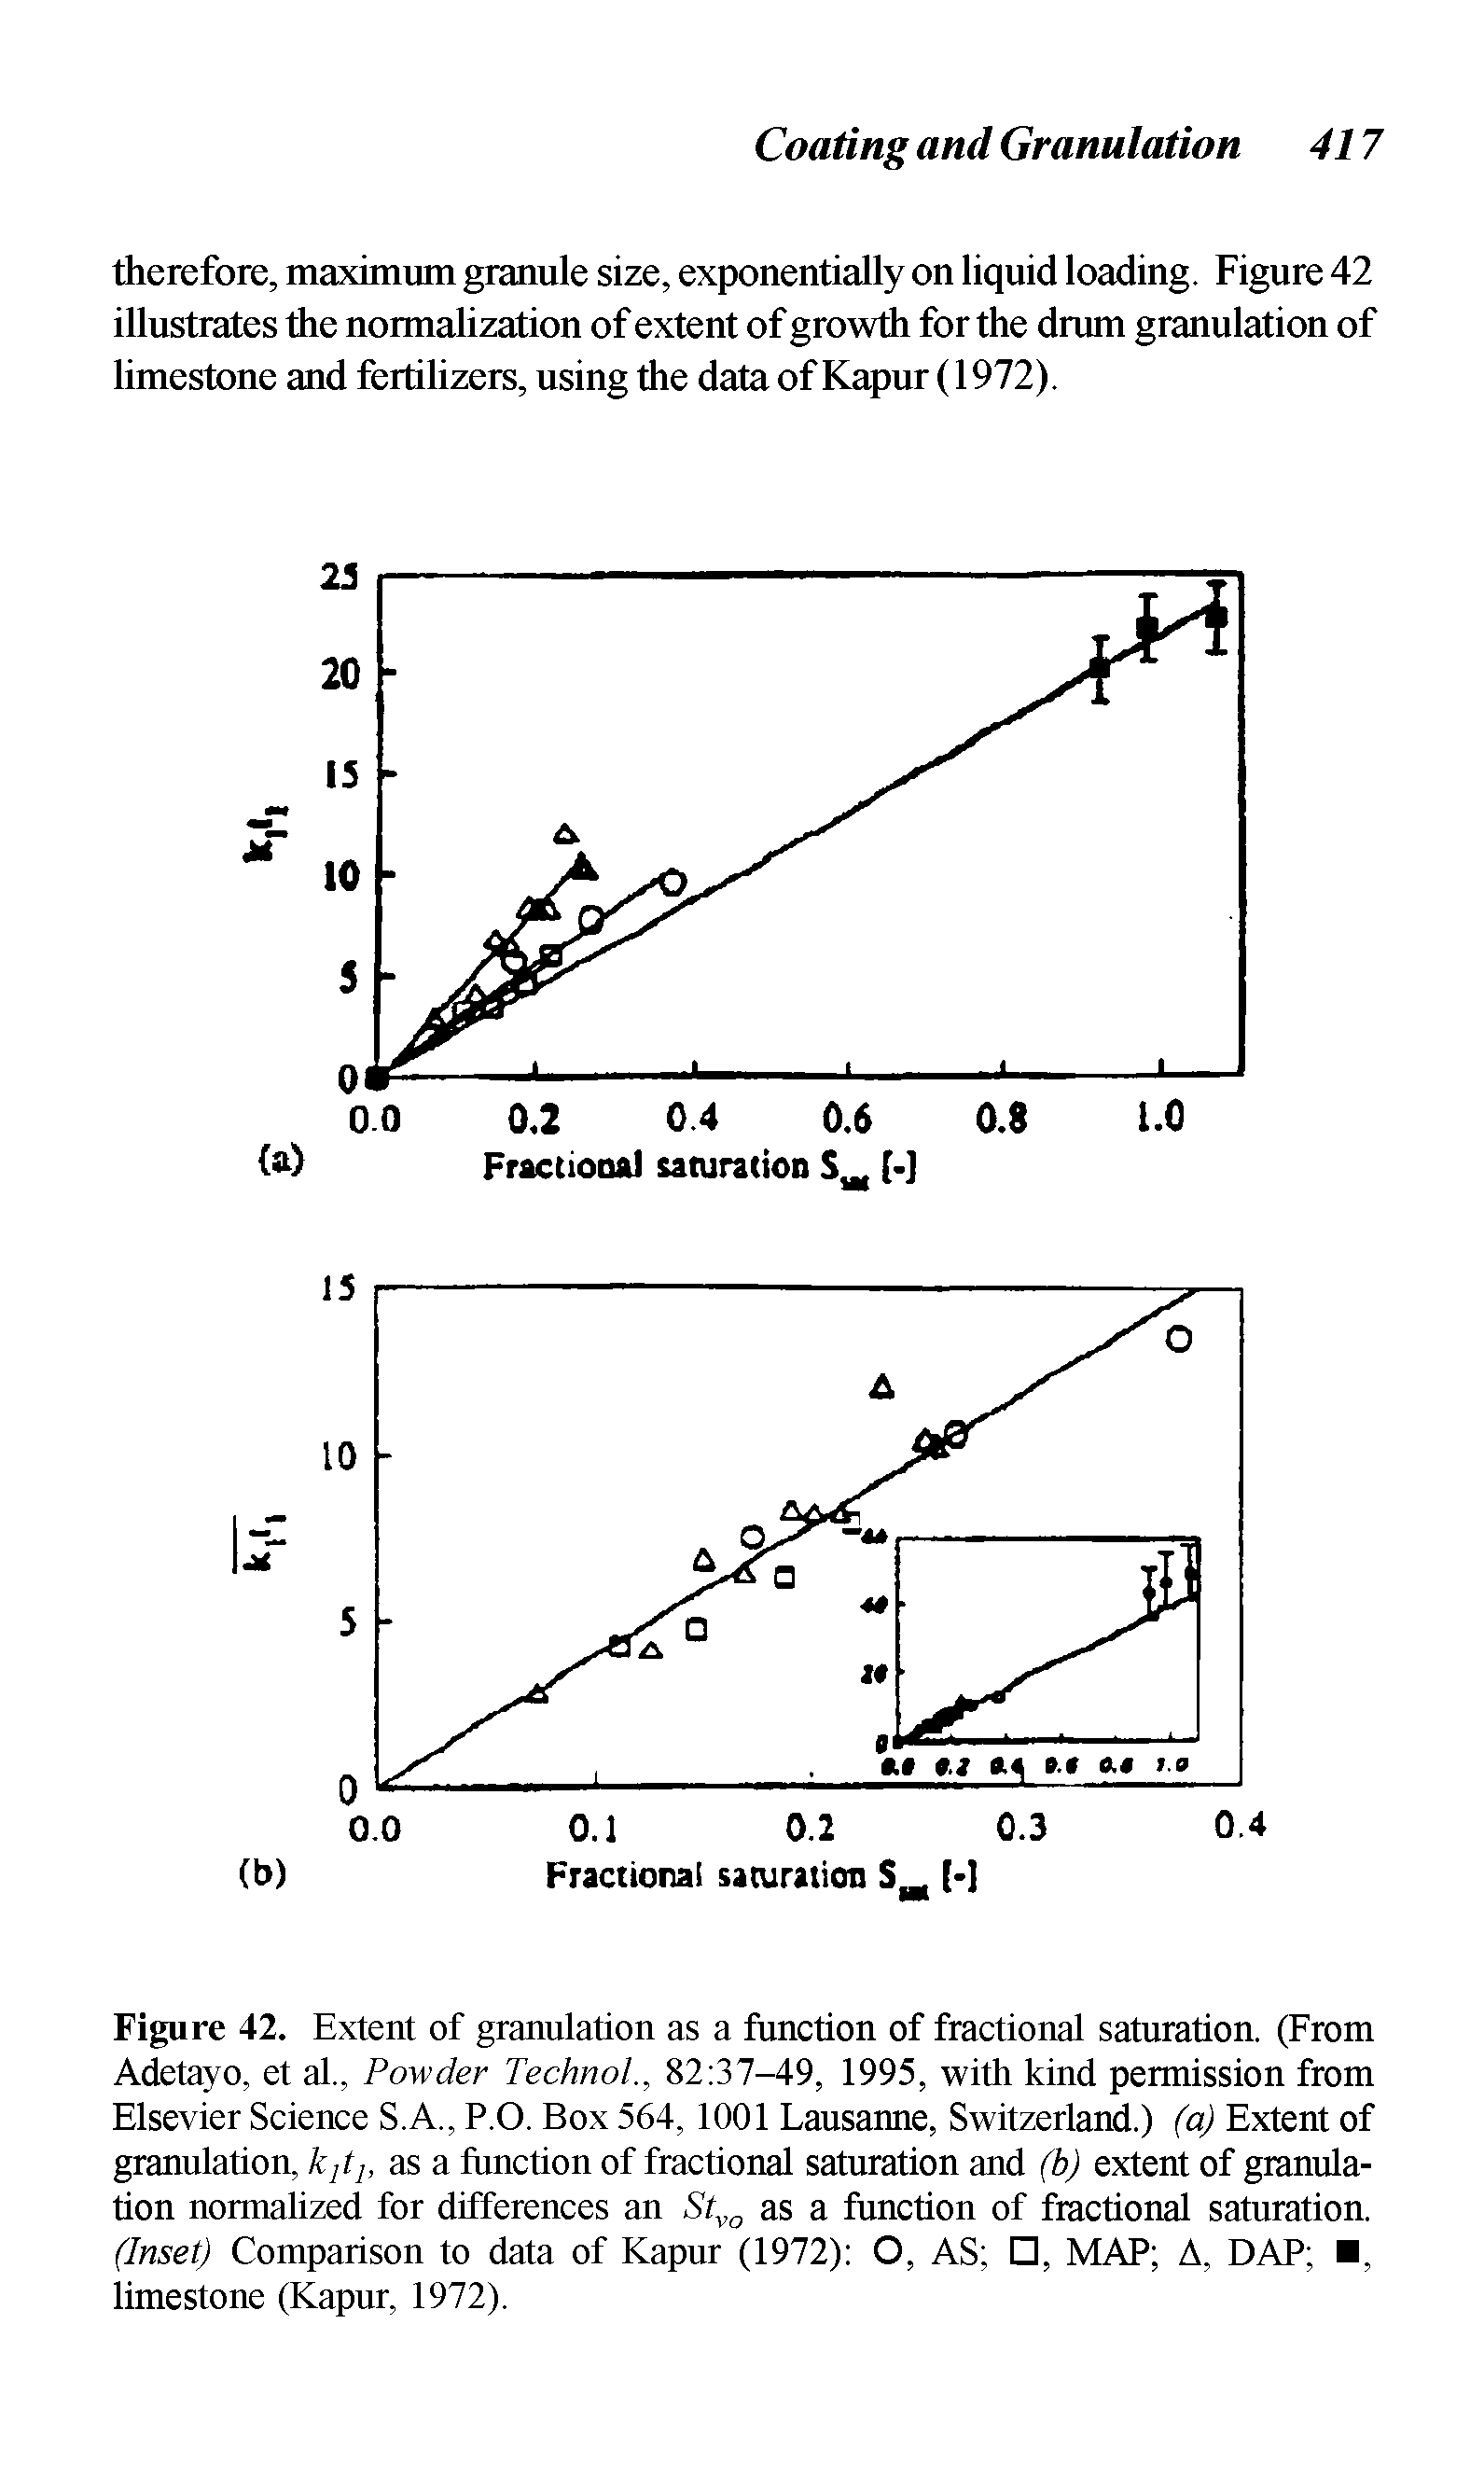 Figure 42. Extent of granulation as a function of fractional saturation. (From Adetayo, et al., Powder Technol., 82 37-49, 1995, with kind permission from Elsevier Science S.A., P.O. Box 564, 1001 Lausanne, Switzerland.) (a) Extent of granulation, k,ih as a function of fractional saturation and (b) extent of granulation normalized for differences an Stvo as a function of fractional saturation. (Inset) Comparison to data of Kapur (1972) O, AS , MAP A, DAP , limestone (Kapur, 1972).